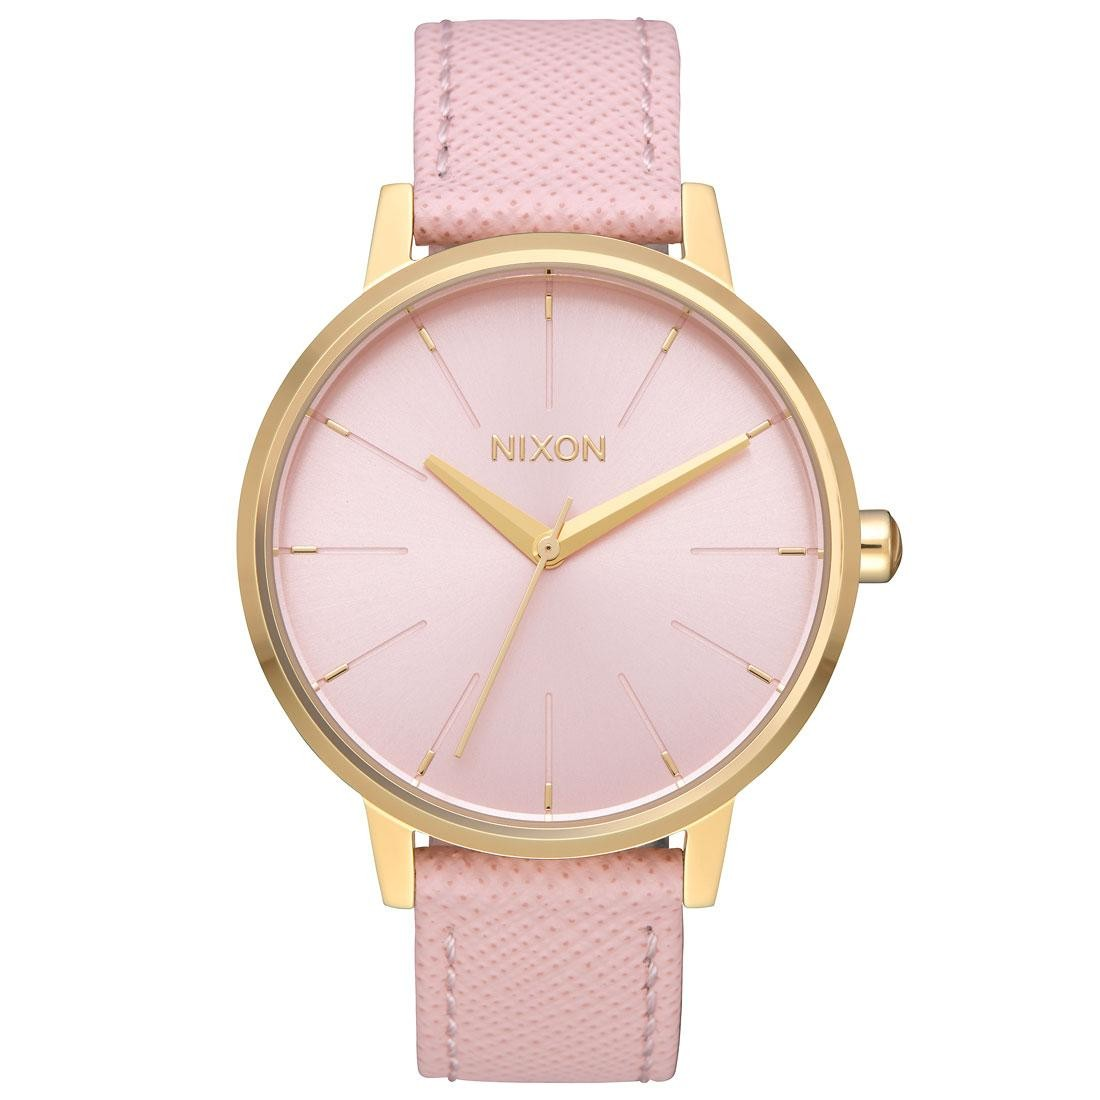 Nixon Kensington Leather Watch (gold / light / pale)